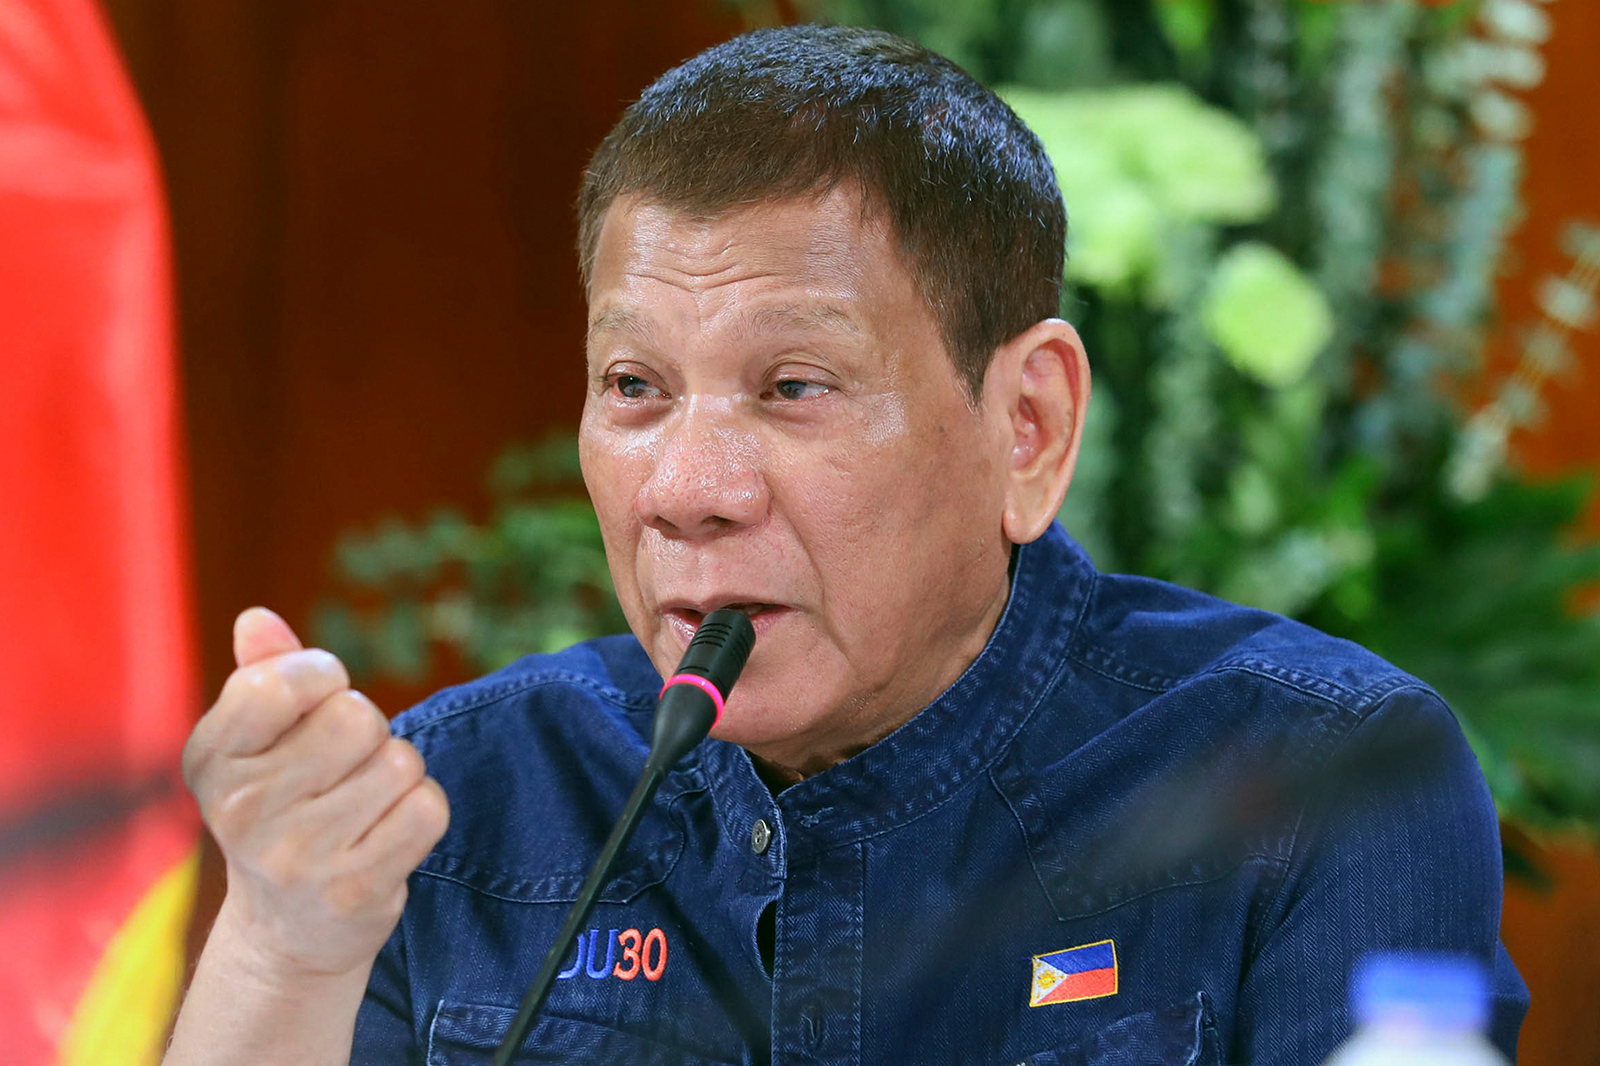 In this photo provided by the Malacanang Presidential Photographers Division, Philippine President Rodrigo Duterte meets members of the Inter-Agency Task Force on the Emerging Infectious Diseases at the Malacanang presidential palace in Manila, Philippines on July 30.